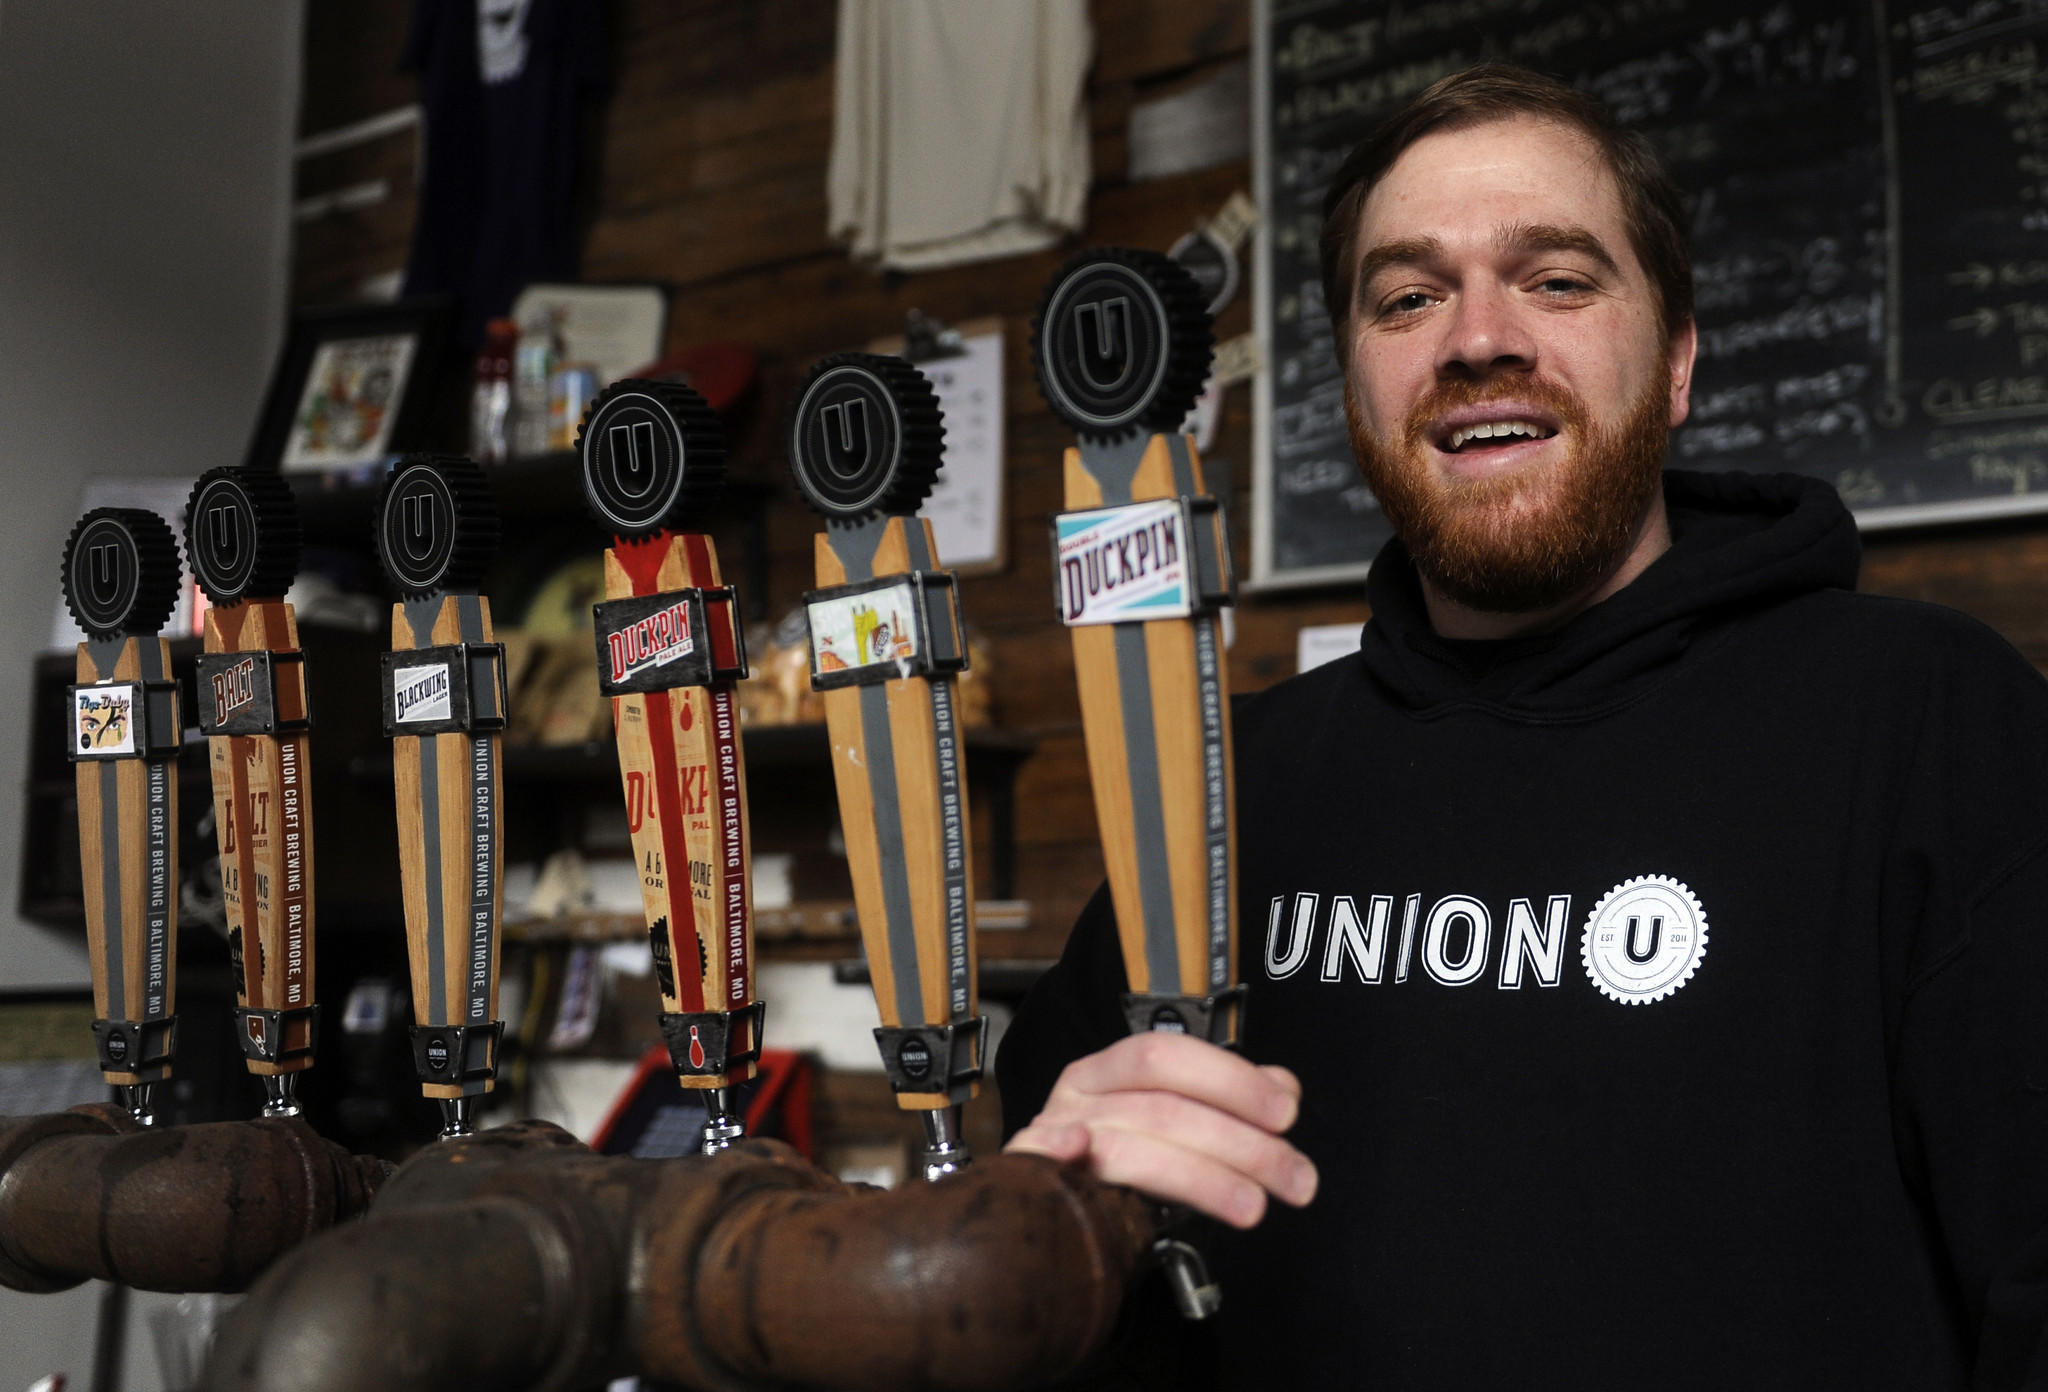 Adam Benesch is the co-founder of Union Craft Brewing Company.